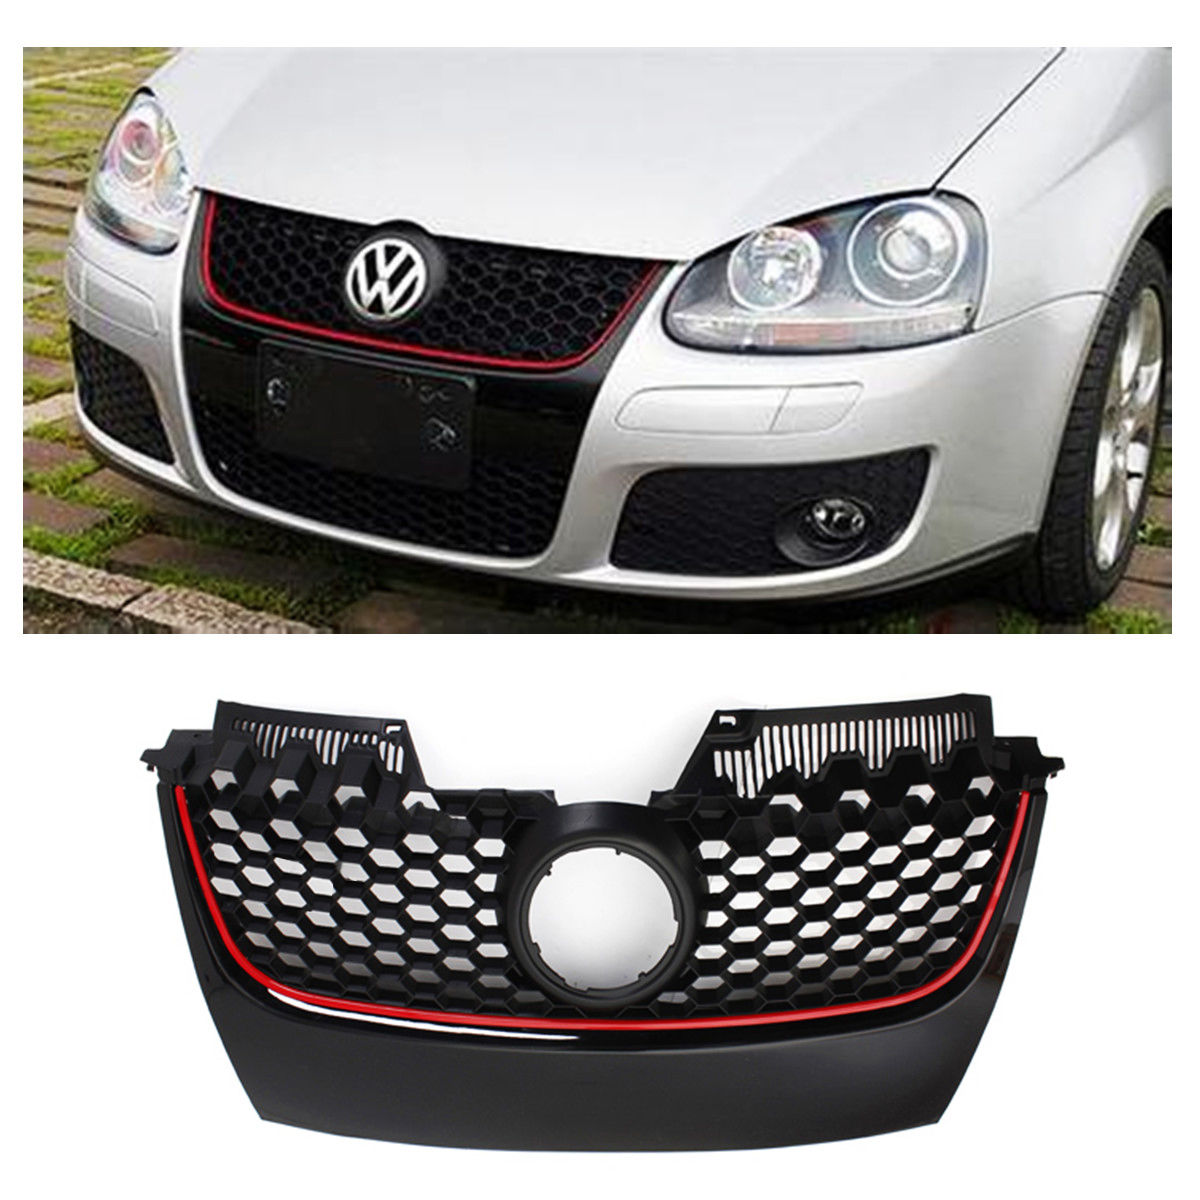 Car Red Strip Front Center Grille Bumper Grill Black with Red Trim For VW for Jetta GTI GLI MK5 2006 2007 2008 2009Car Red Strip Front Center Grille Bumper Grill Black with Red Trim For VW for Jetta GTI GLI MK5 2006 2007 2008 2009